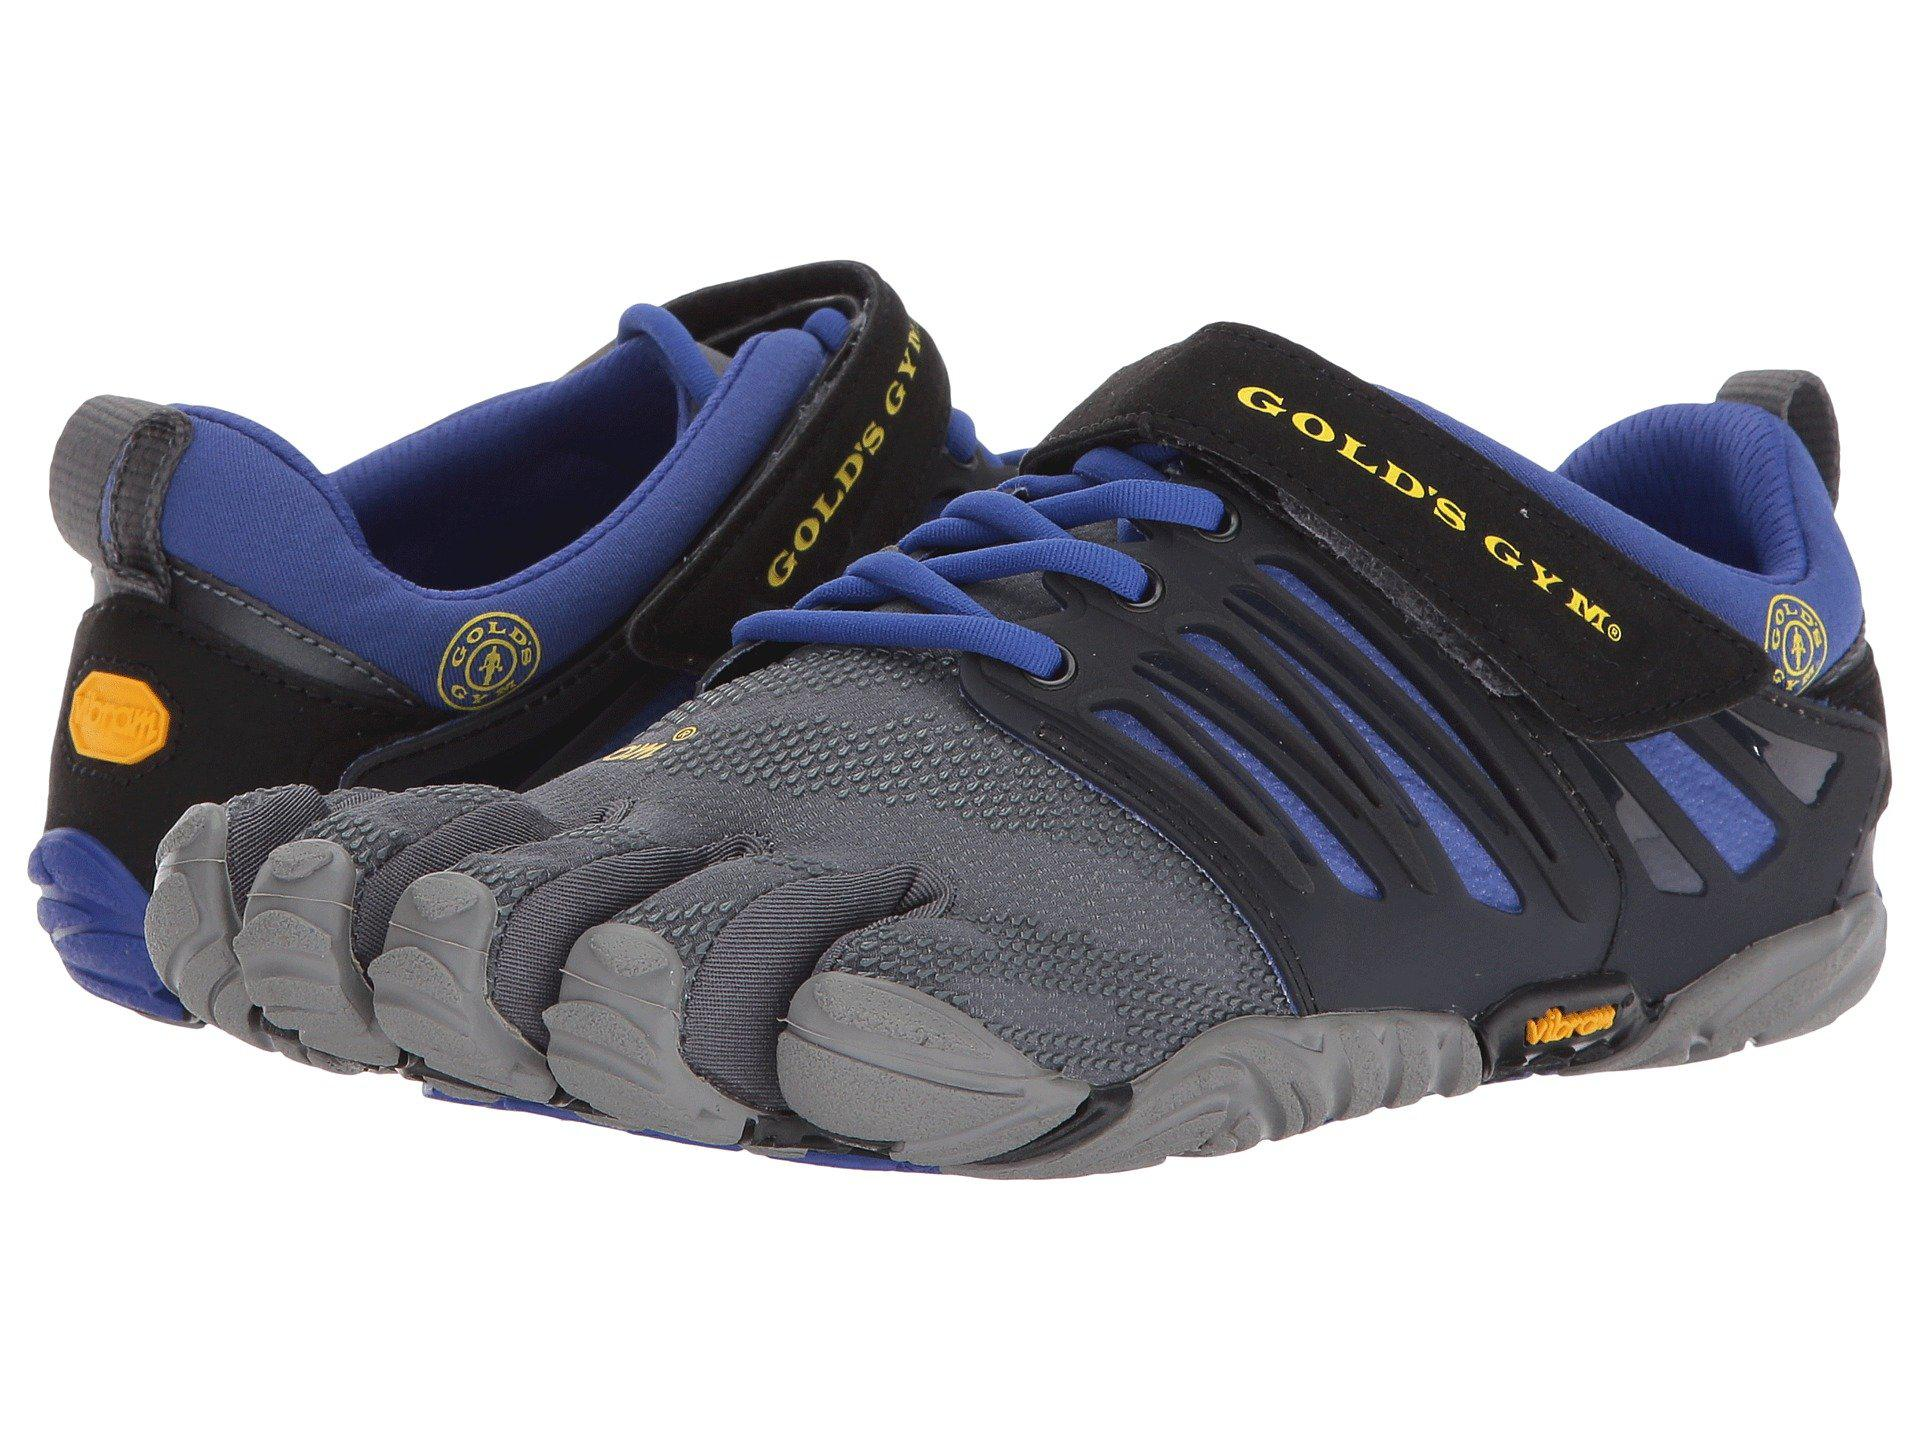 quality design a0625 29c90 ... low price vibram fivefingers vibram komodosport black gold grey five  fingers . 3d42c 80b5f